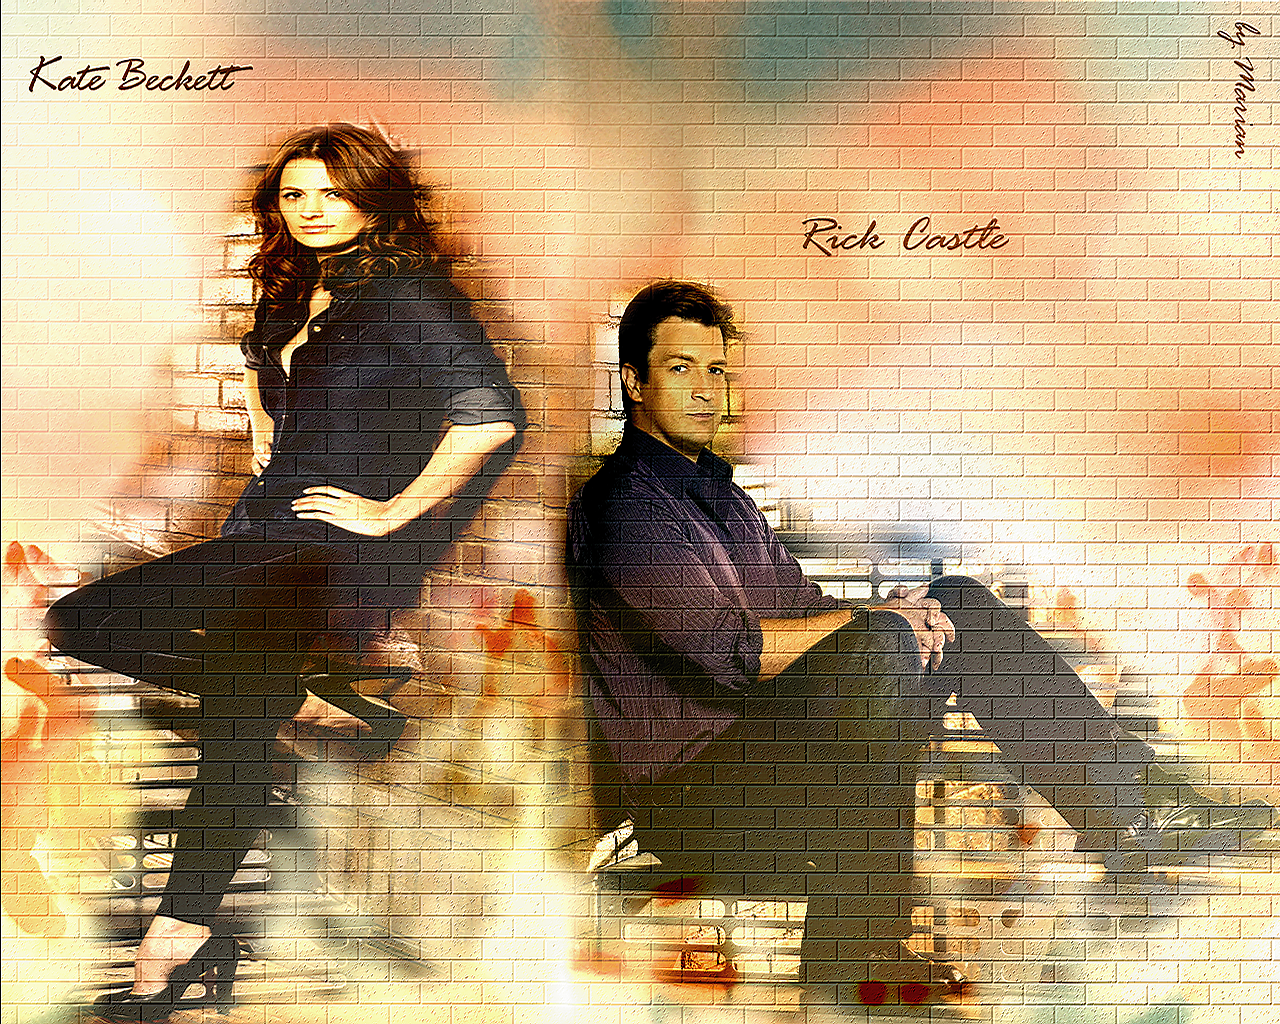 Kate Beckett&Rick замок